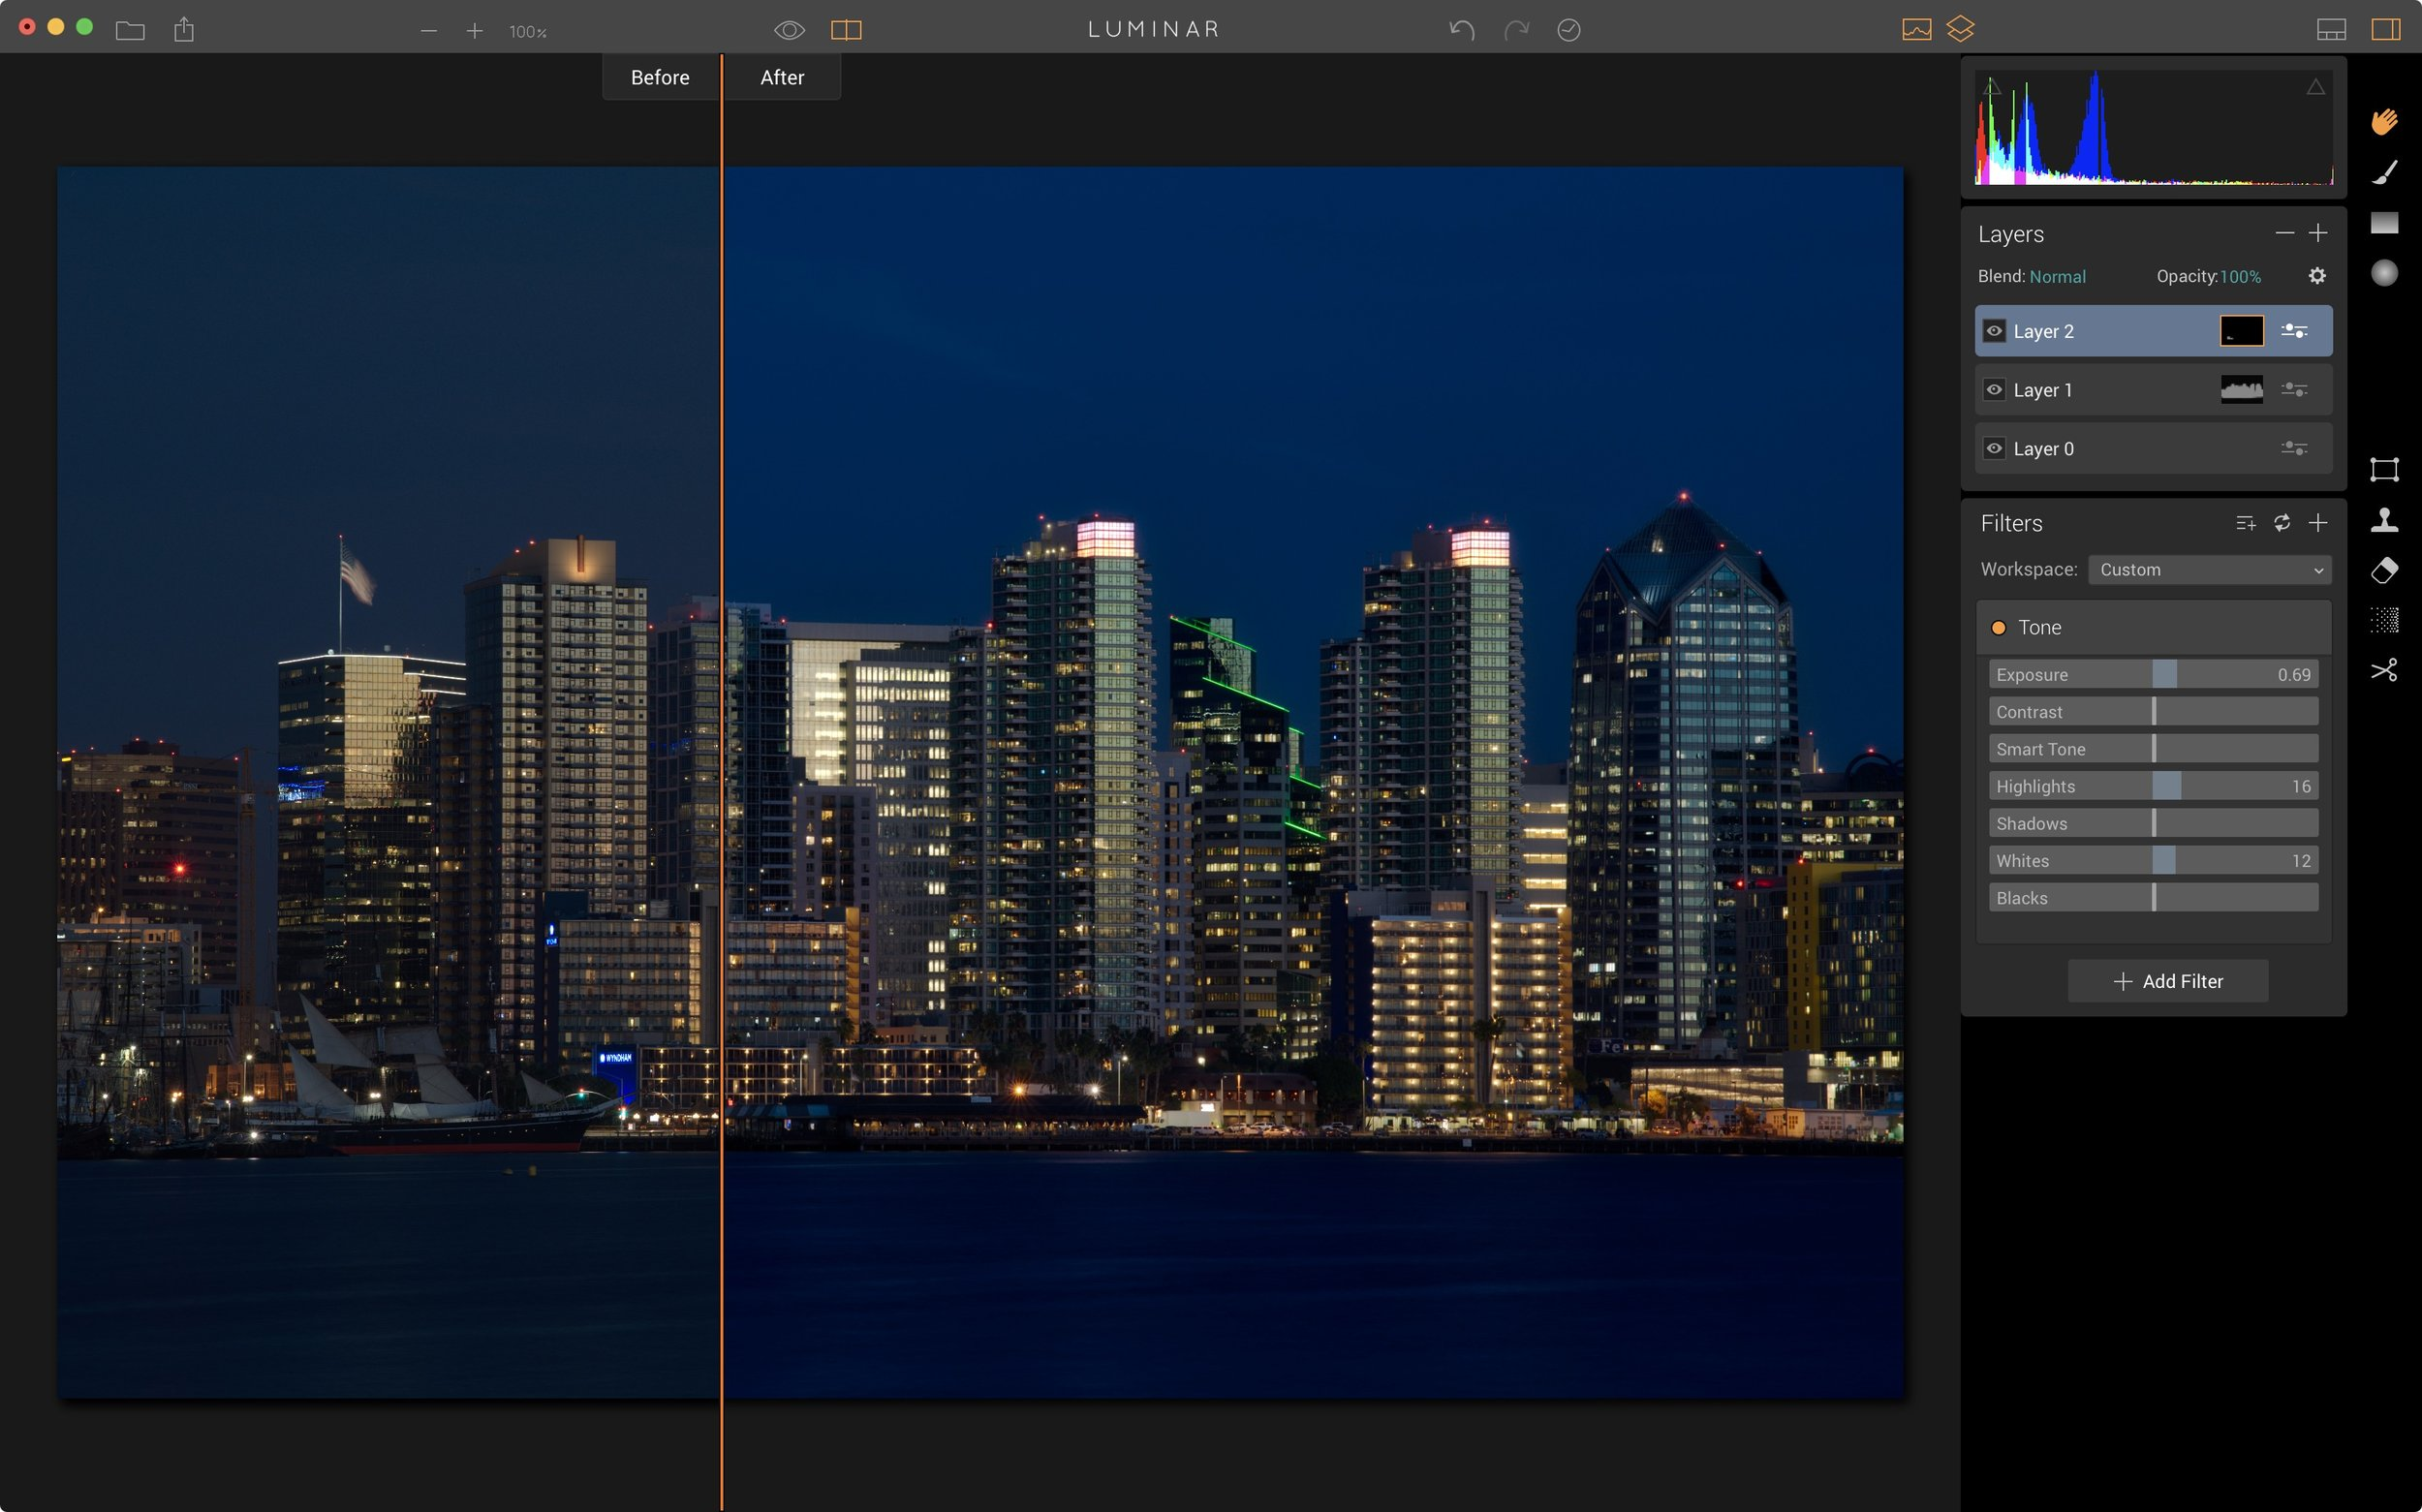 Before and after in Luminar